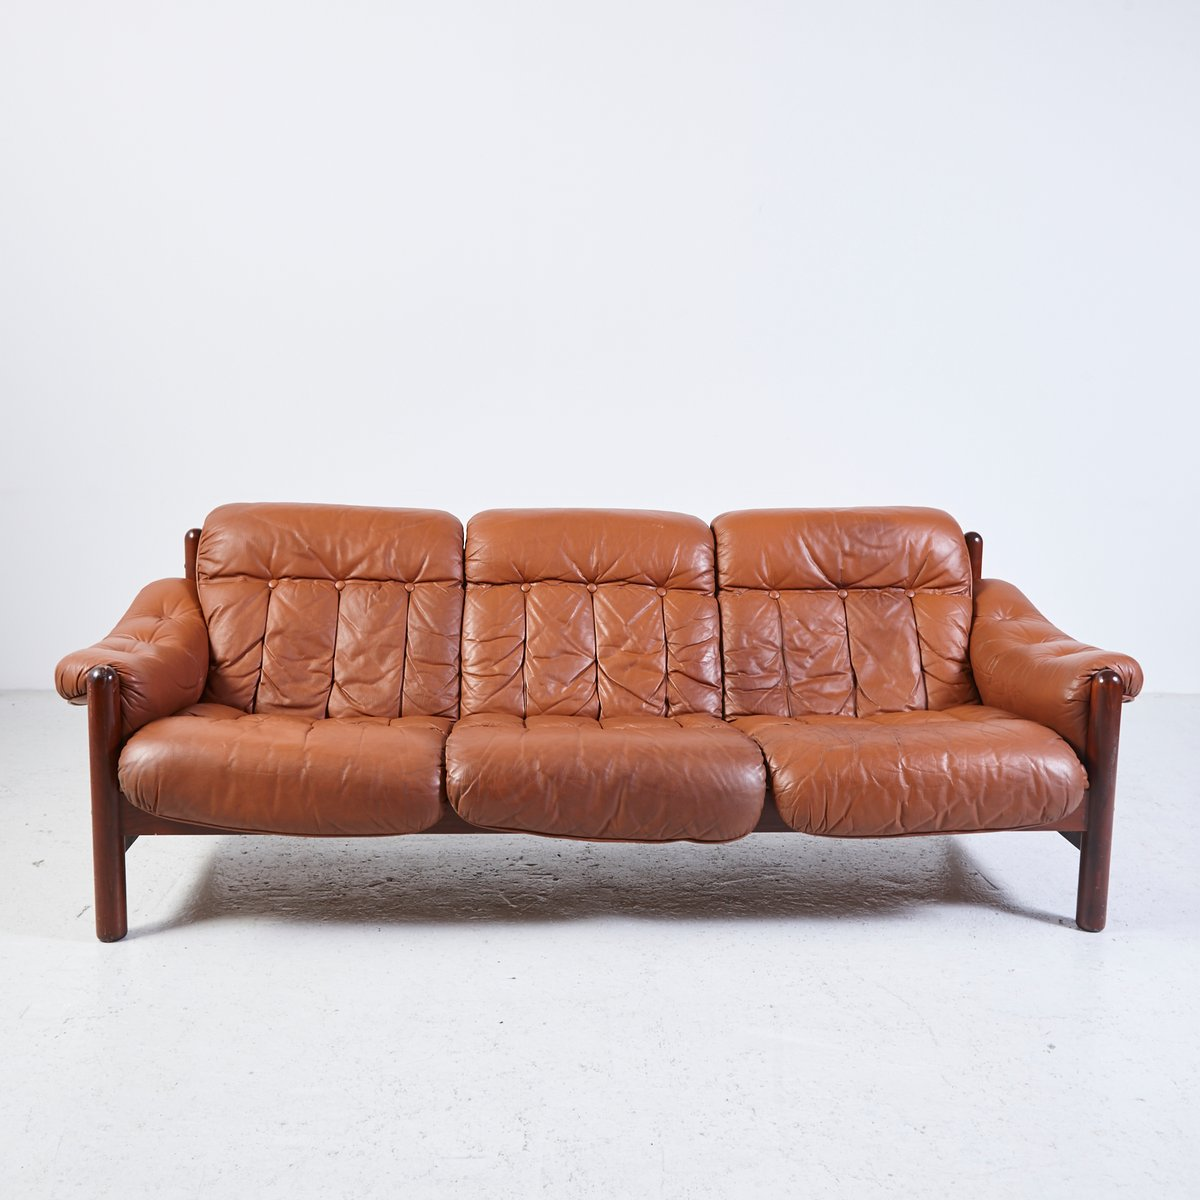 Vintage 3 Seater Leather Sofa With Teak Frame For Sale At